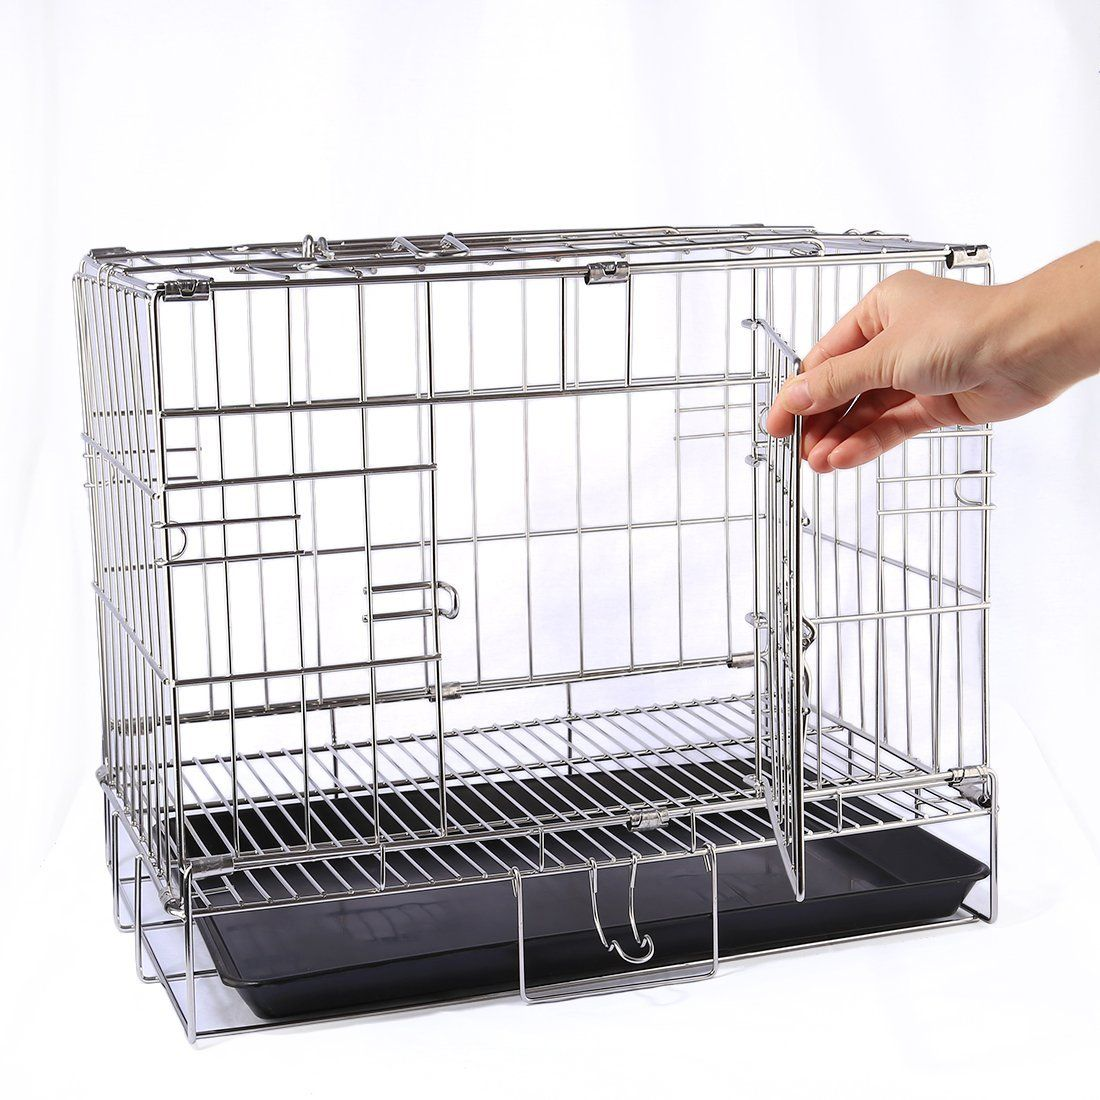 Vicoki Pet Cage Stainless Steel Cat Dog Rabbit Cage Foldable Small ...